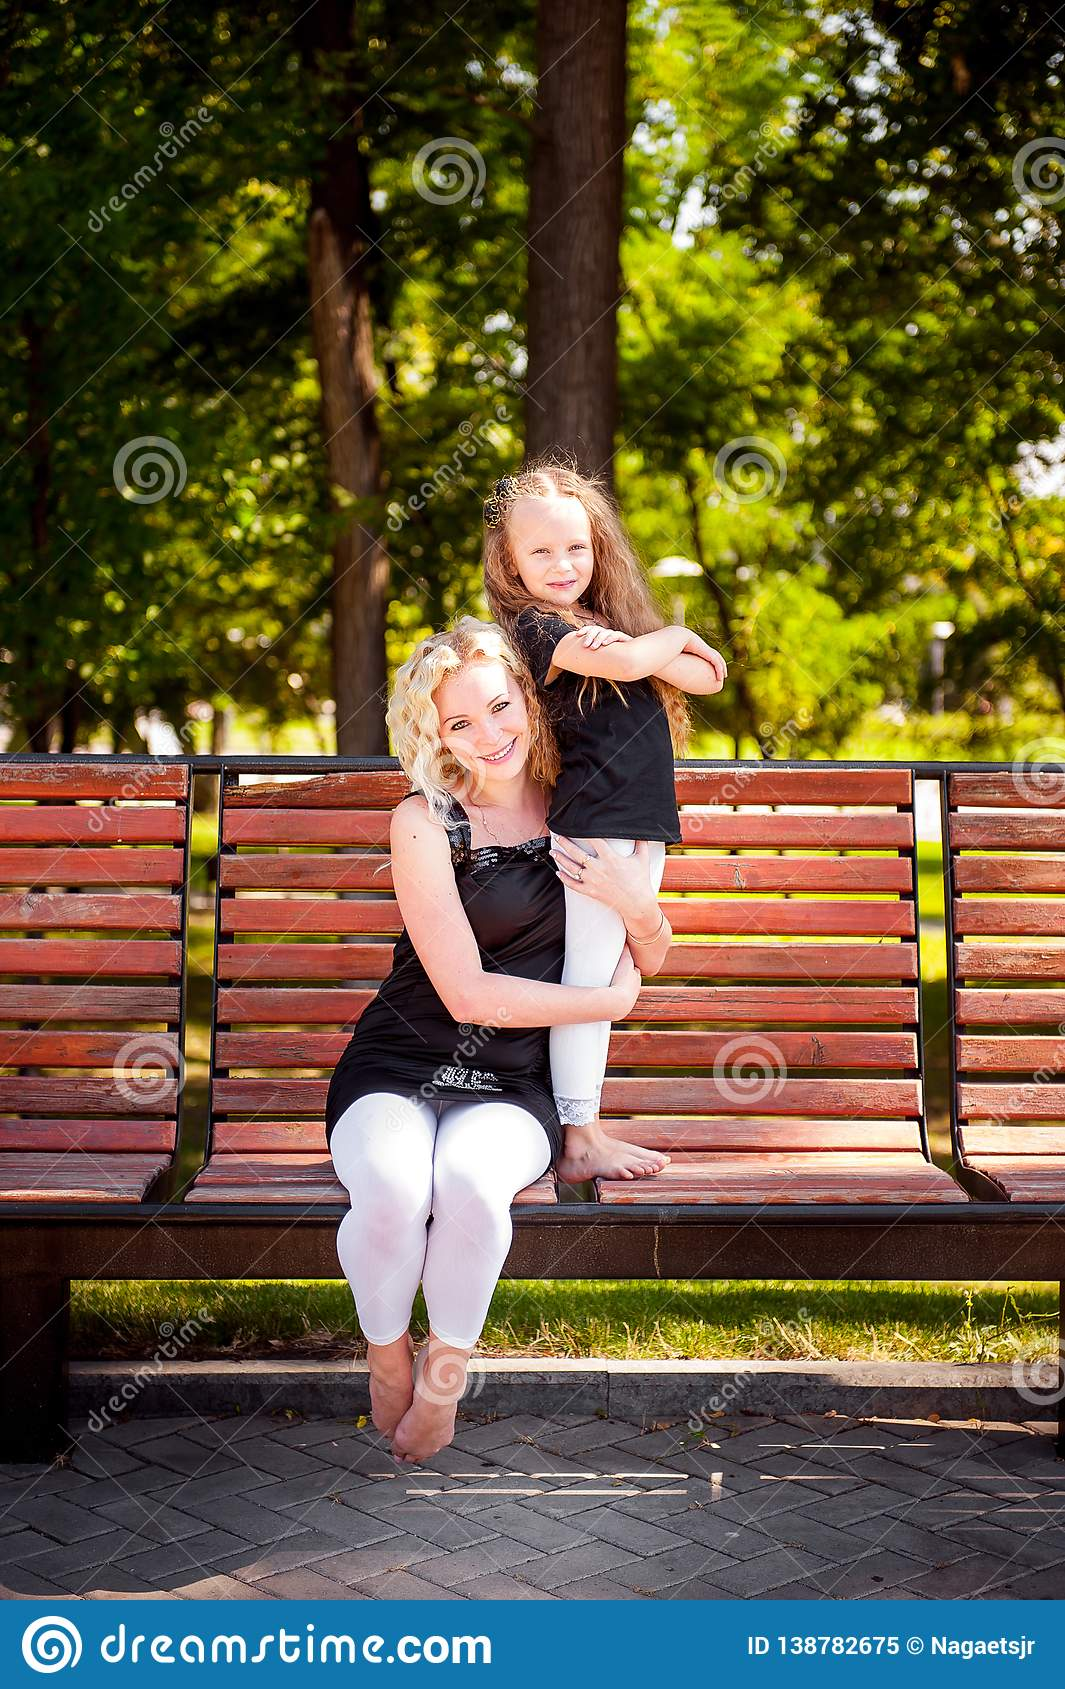 Mather and her daughter in the park.